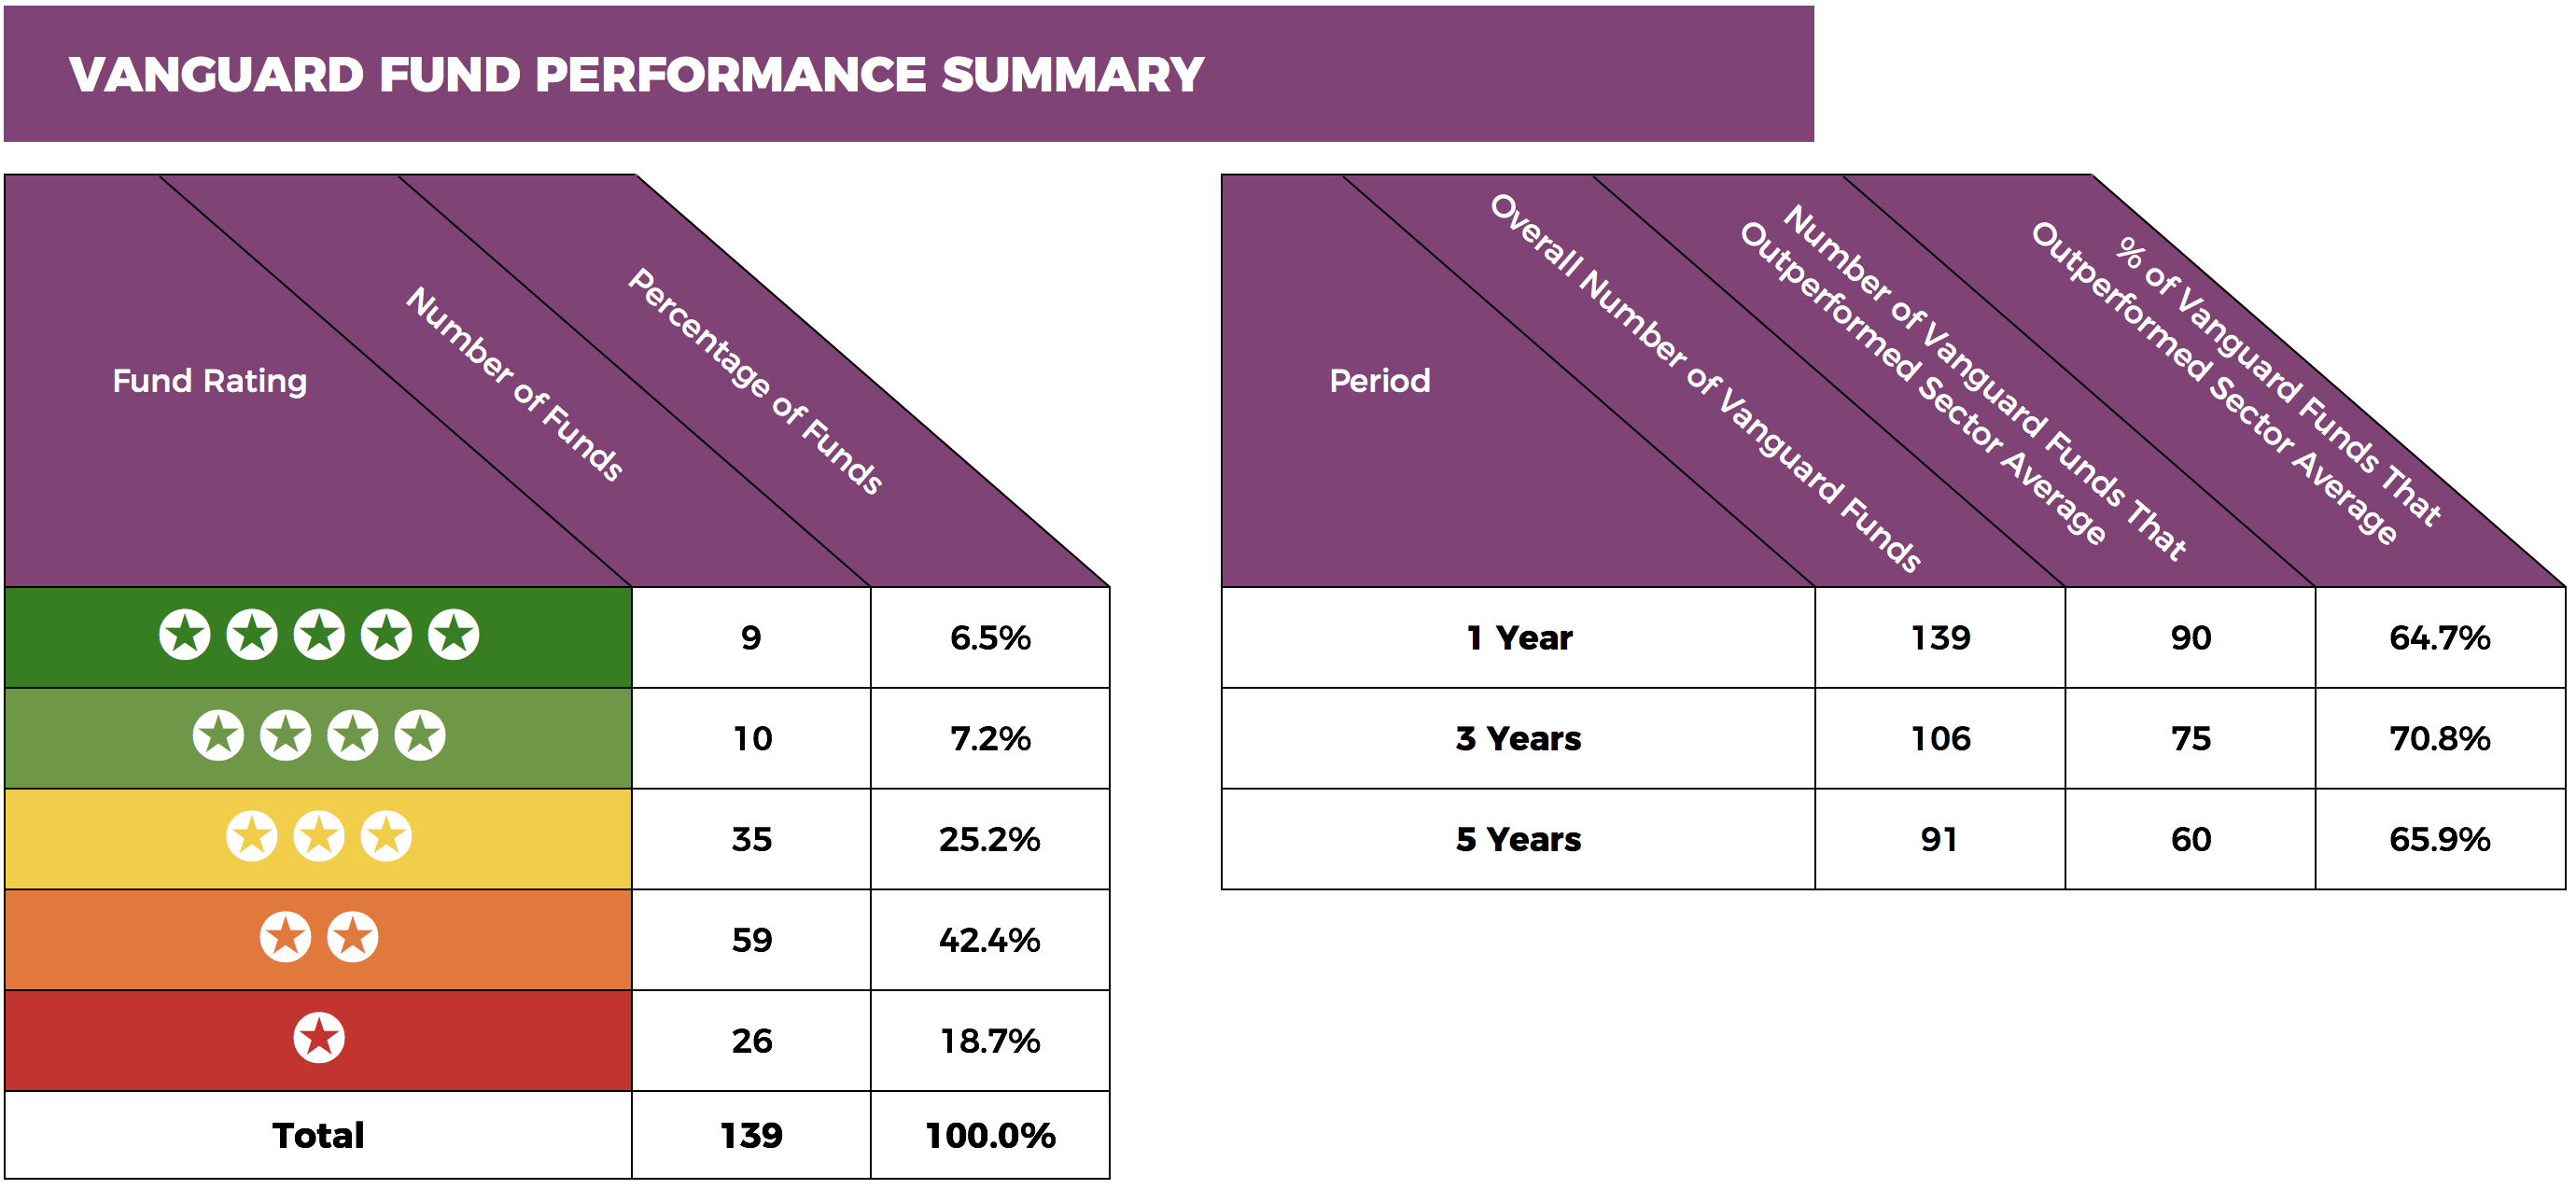 Vanguard fund performance summary.png